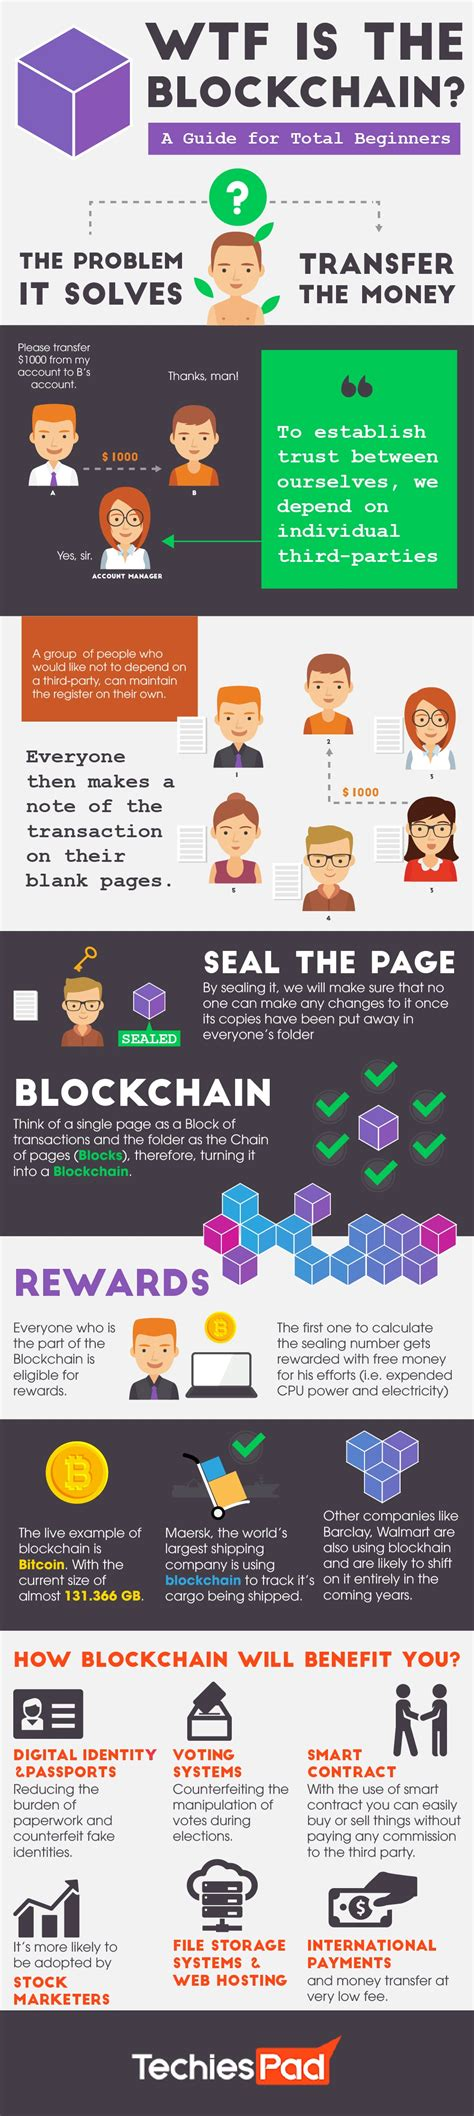 "In actuality, miners are key to how a blockchain works. ""Beginners Guide to the Blockchain"" Infographic / How to Explain Bitcoin to Your Family and ..."